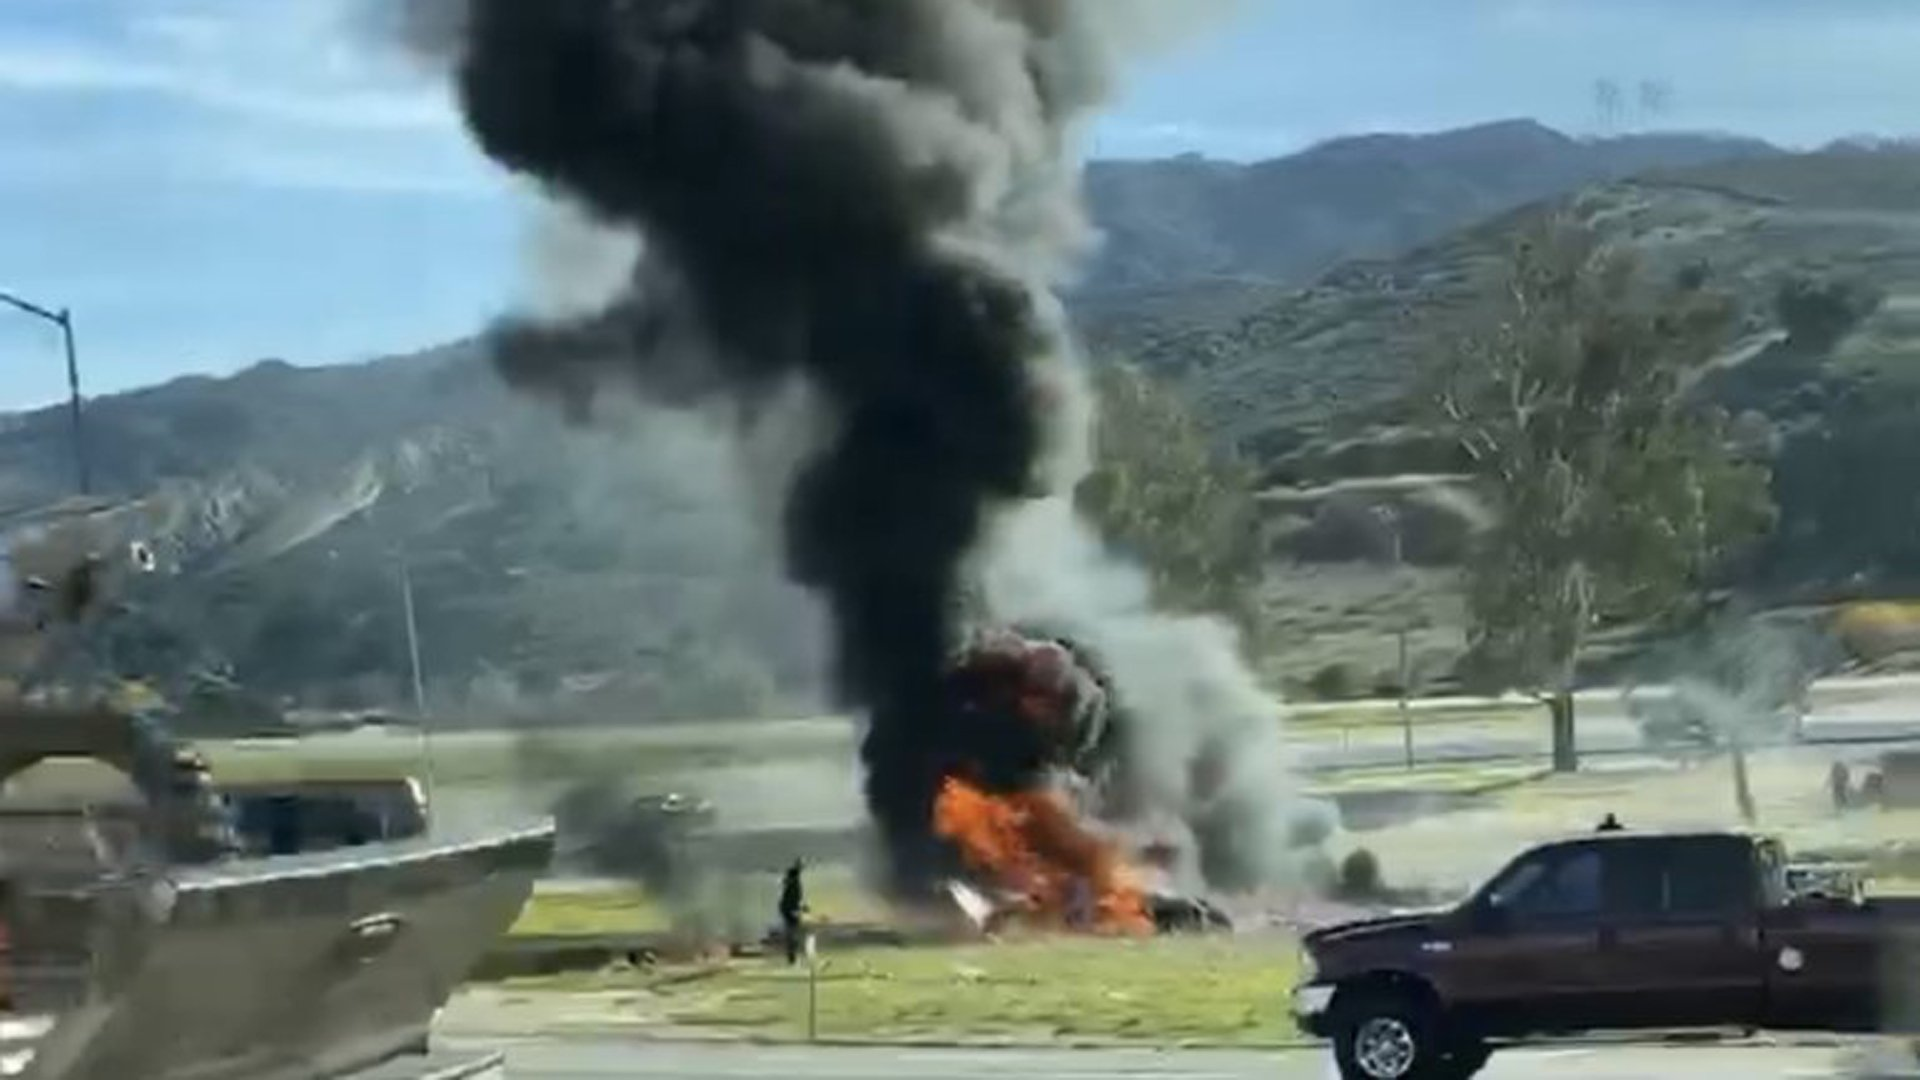 A small plane burning after crashing in Santa Clarita on Jan. 4, 2019, is seen in a photo shared by KTLA viewer Julia Morales.